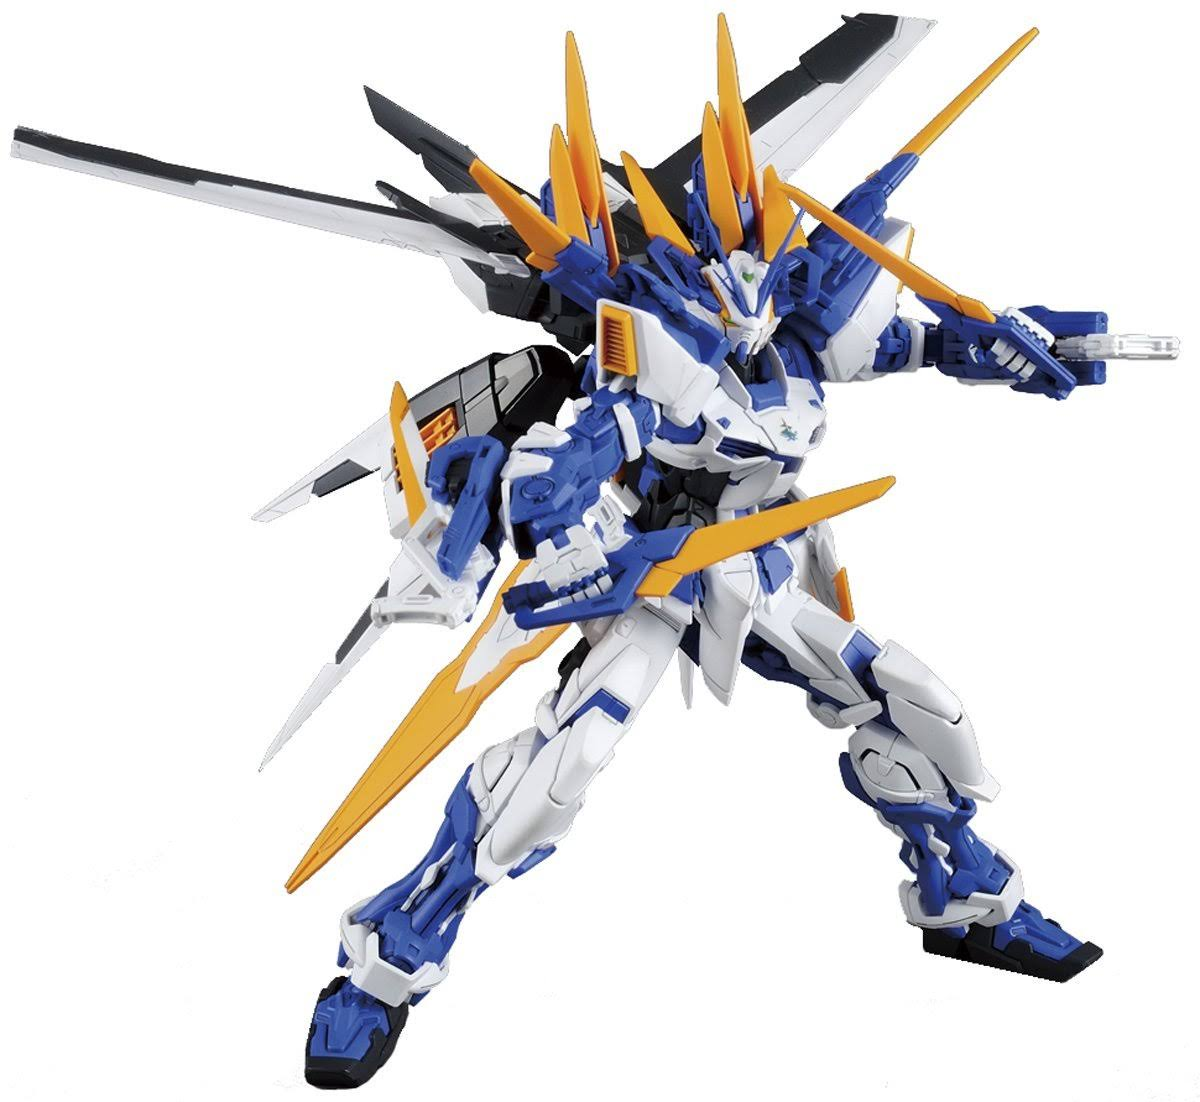 Bandai Scale Mobile Suit Gundam Action Figure - Astray Blue Frame D